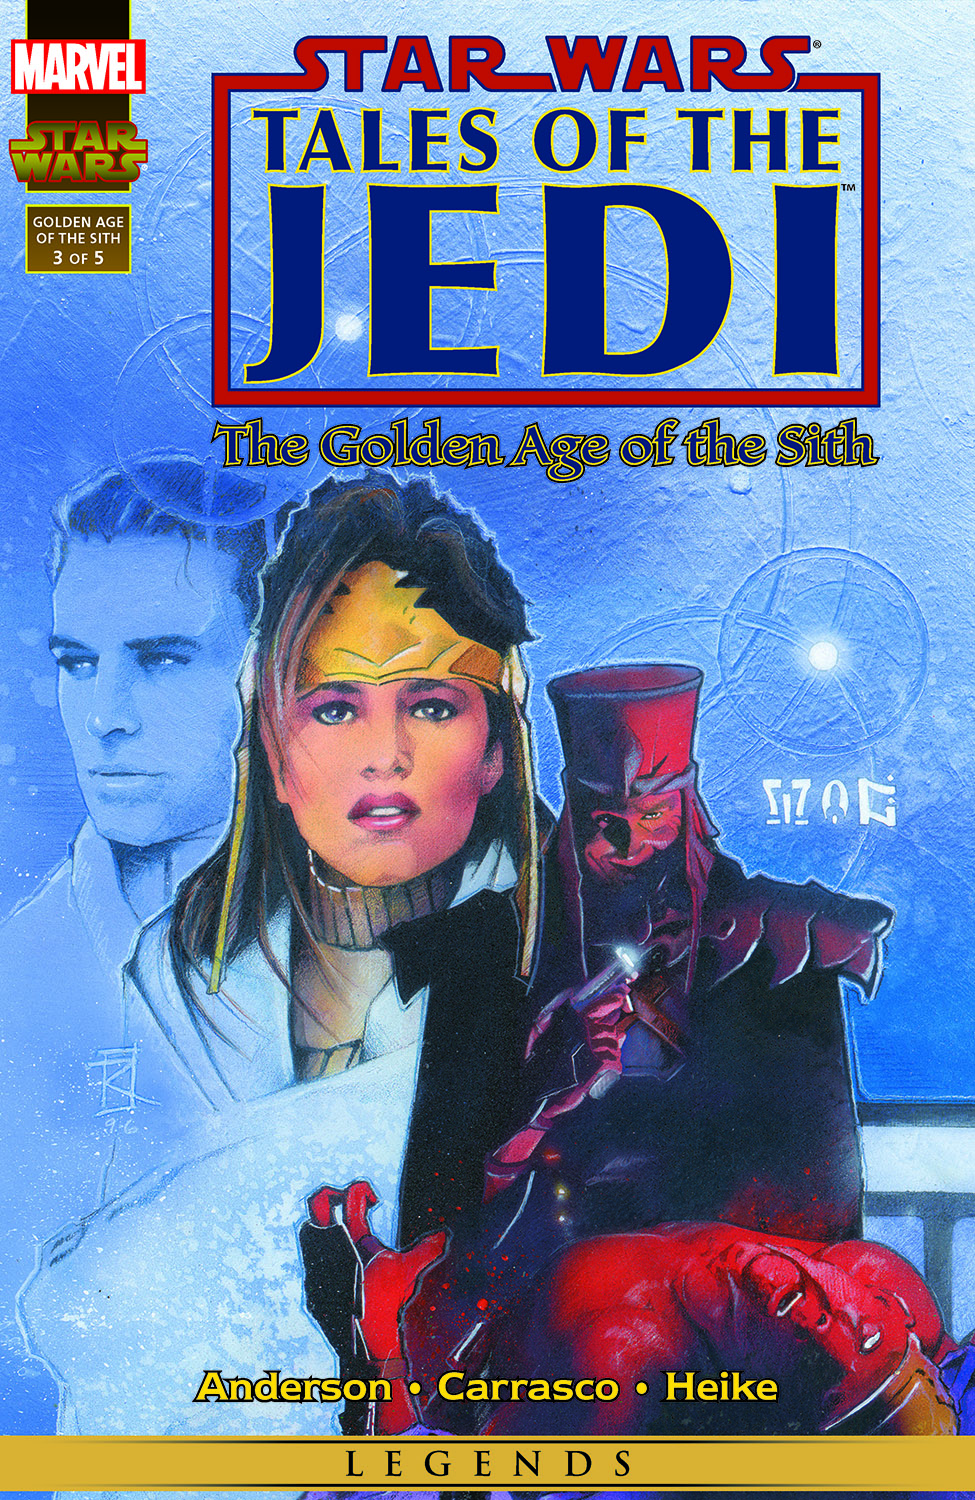 Star Wars: Tales Of The Jedi - The Golden Age Of The Sith (1996) #3